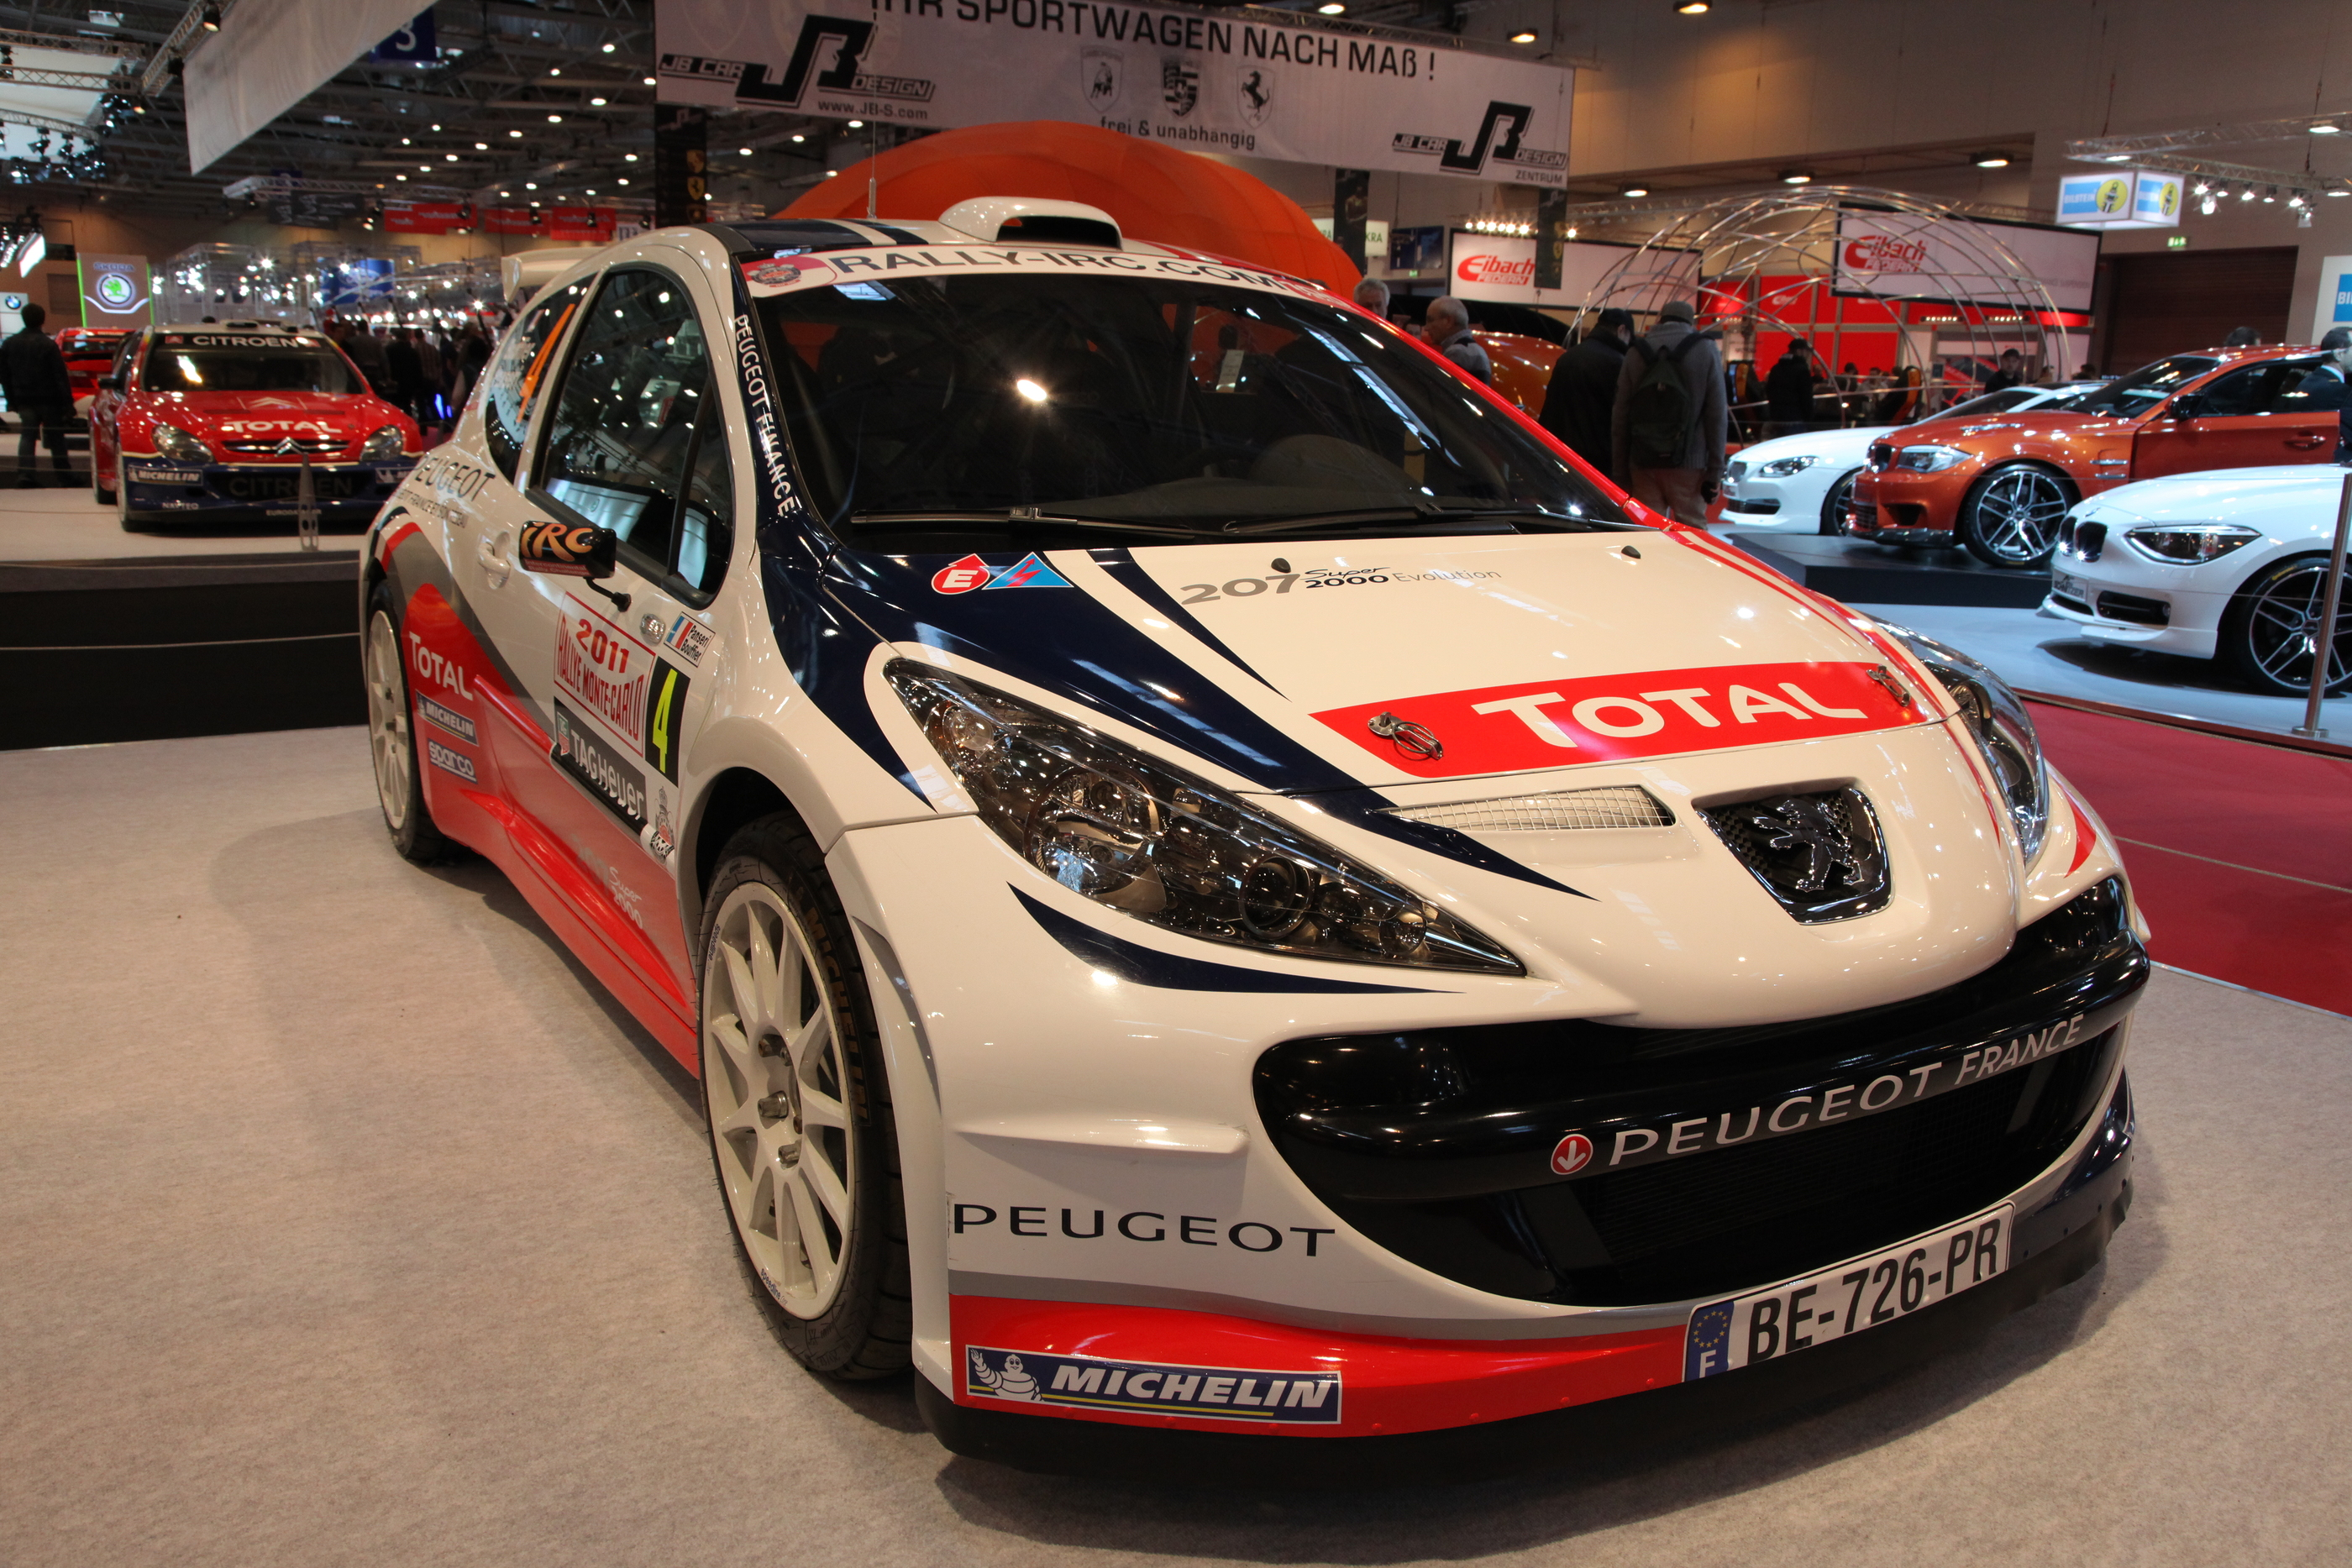 ESSEN - NOV 29: PEUGEOT 207 SUPER 2000 BY P.LANGE